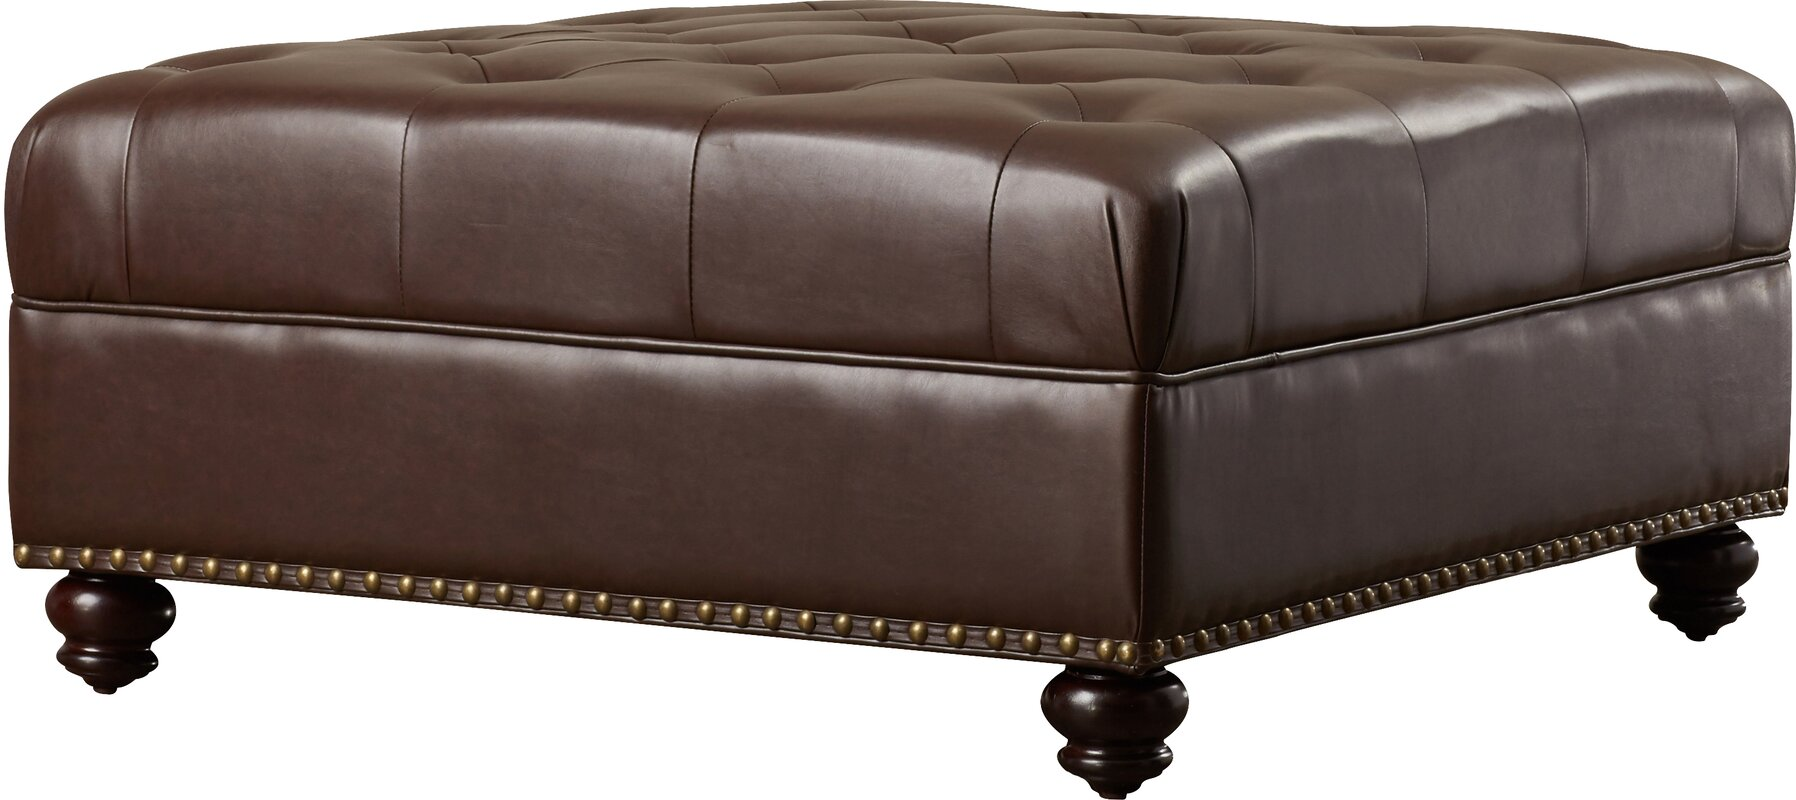 Darby Home Co Westview Tufted Ottoman & Reviews | Wayfair